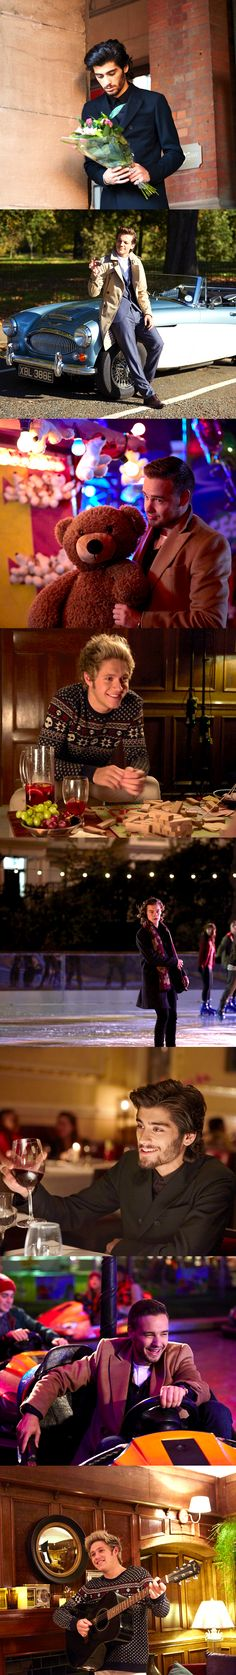 What I think about Night Changes http://liberdadecomnutella.blogspot.com.br/